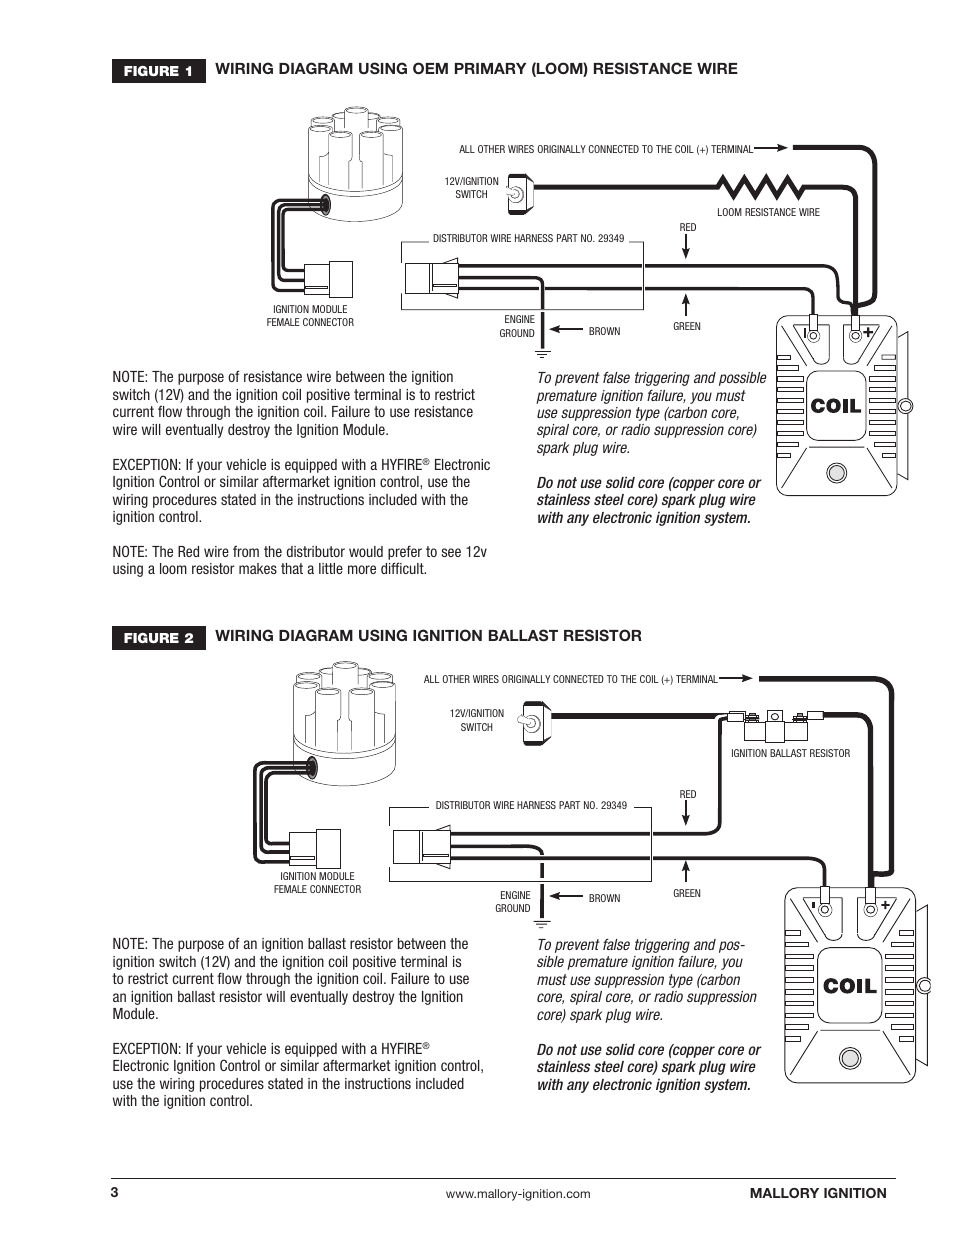 Chevy Hei Mallory Wiring Diagram | Wiring Liry on hei ignition parts, hei coil diagram, swap hei ignition diagram, chevy distributor diagram, hei ignition exploded view, hei ignition circuit diagram, hei ignition capacitor, pertronix distributor wiring diagram, hei ignition troubleshooting, power steering wiring diagram, hei ignition system, electric fuel pump wiring diagram, hei msd 6a wiring-diagram, hei kill switch diagram, hei conversion wiring, hei schematic, hei plug diagram, hei vacuum advance diagram,